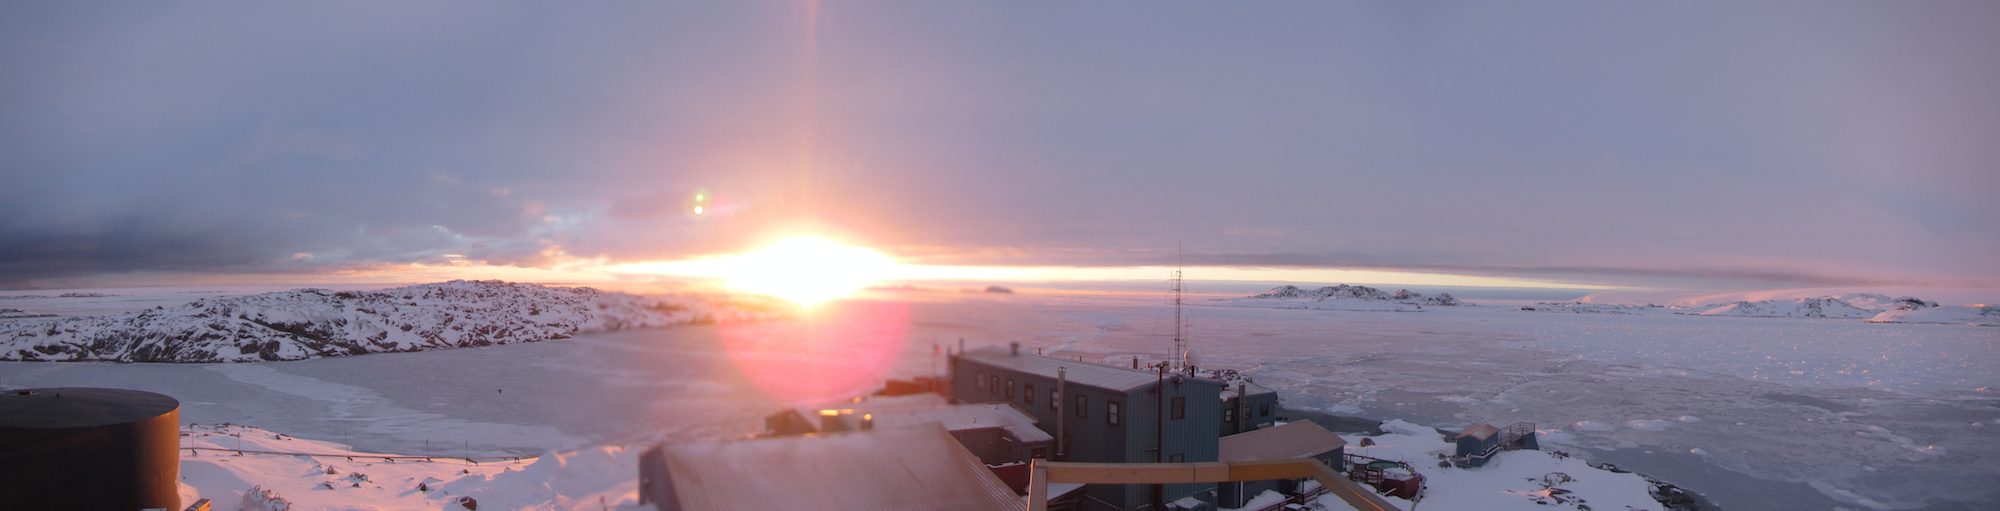 Sunset over the waters of the Bismarck Strait on Oct. 27. While each spring day brings more daylight to the Peninsula, the sea around the station remains icebound.